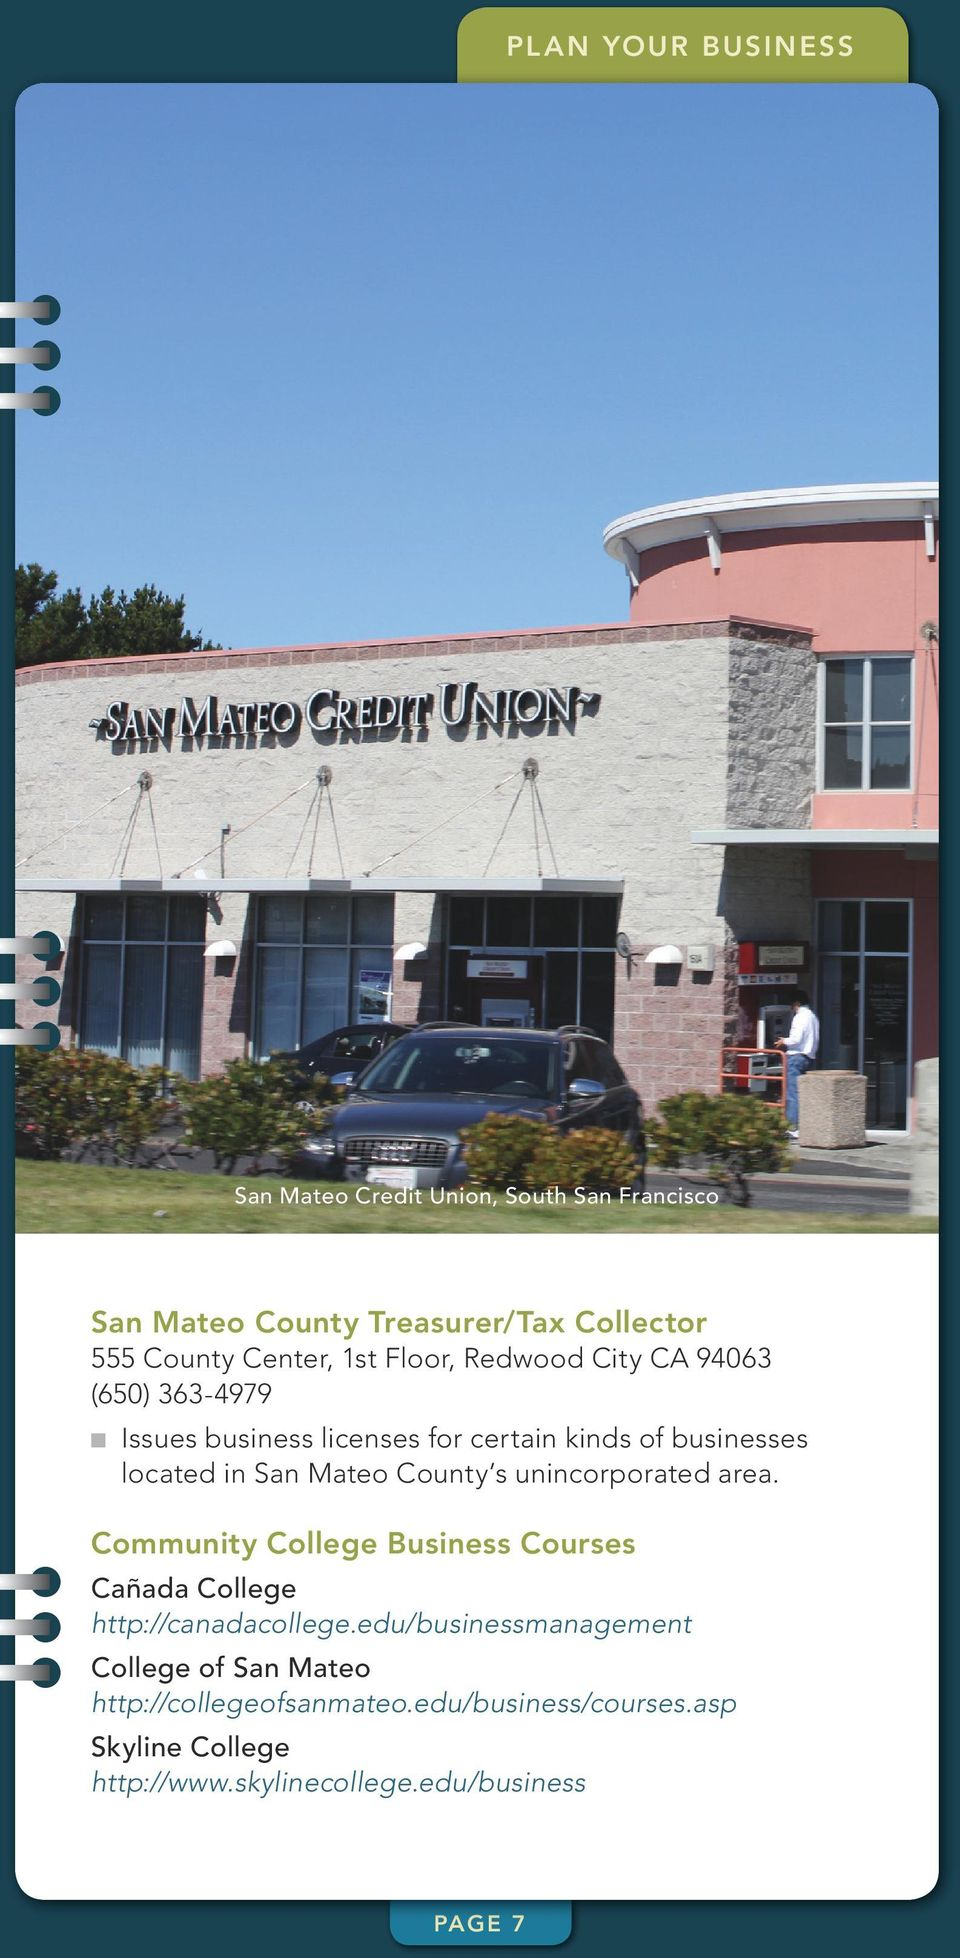 County s unincorporated area. Community College Business Courses Cañada College http://canadacollege.